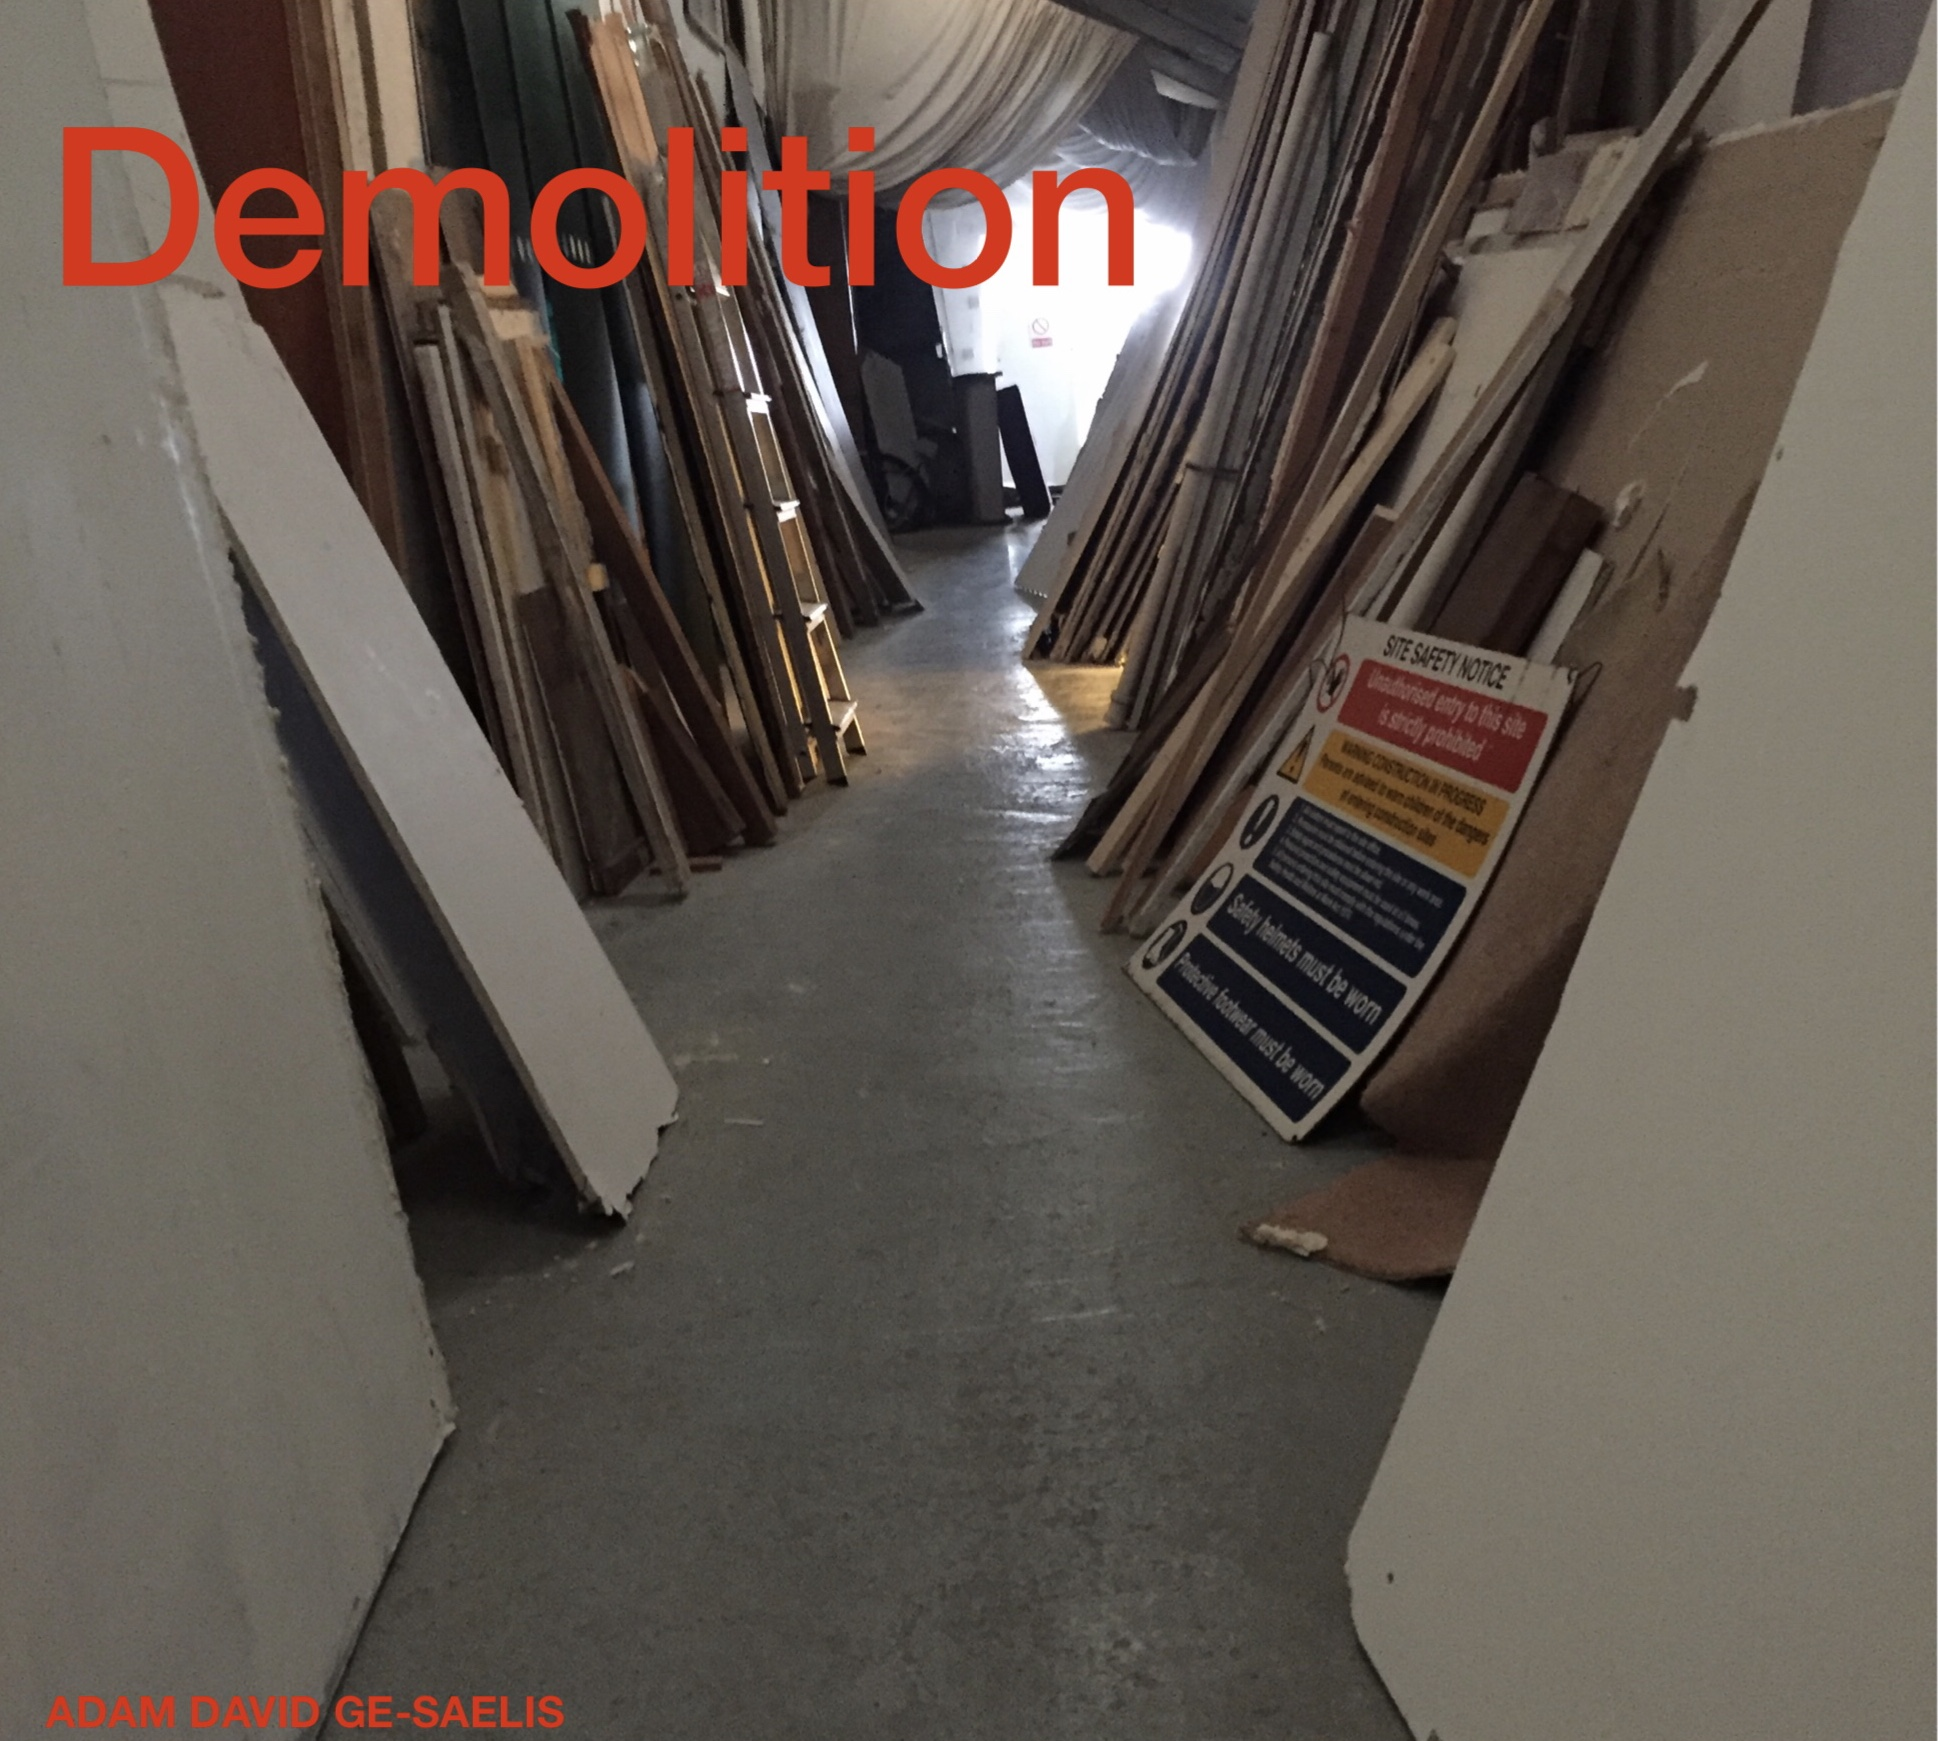 Components of demolition fill the exhibition space